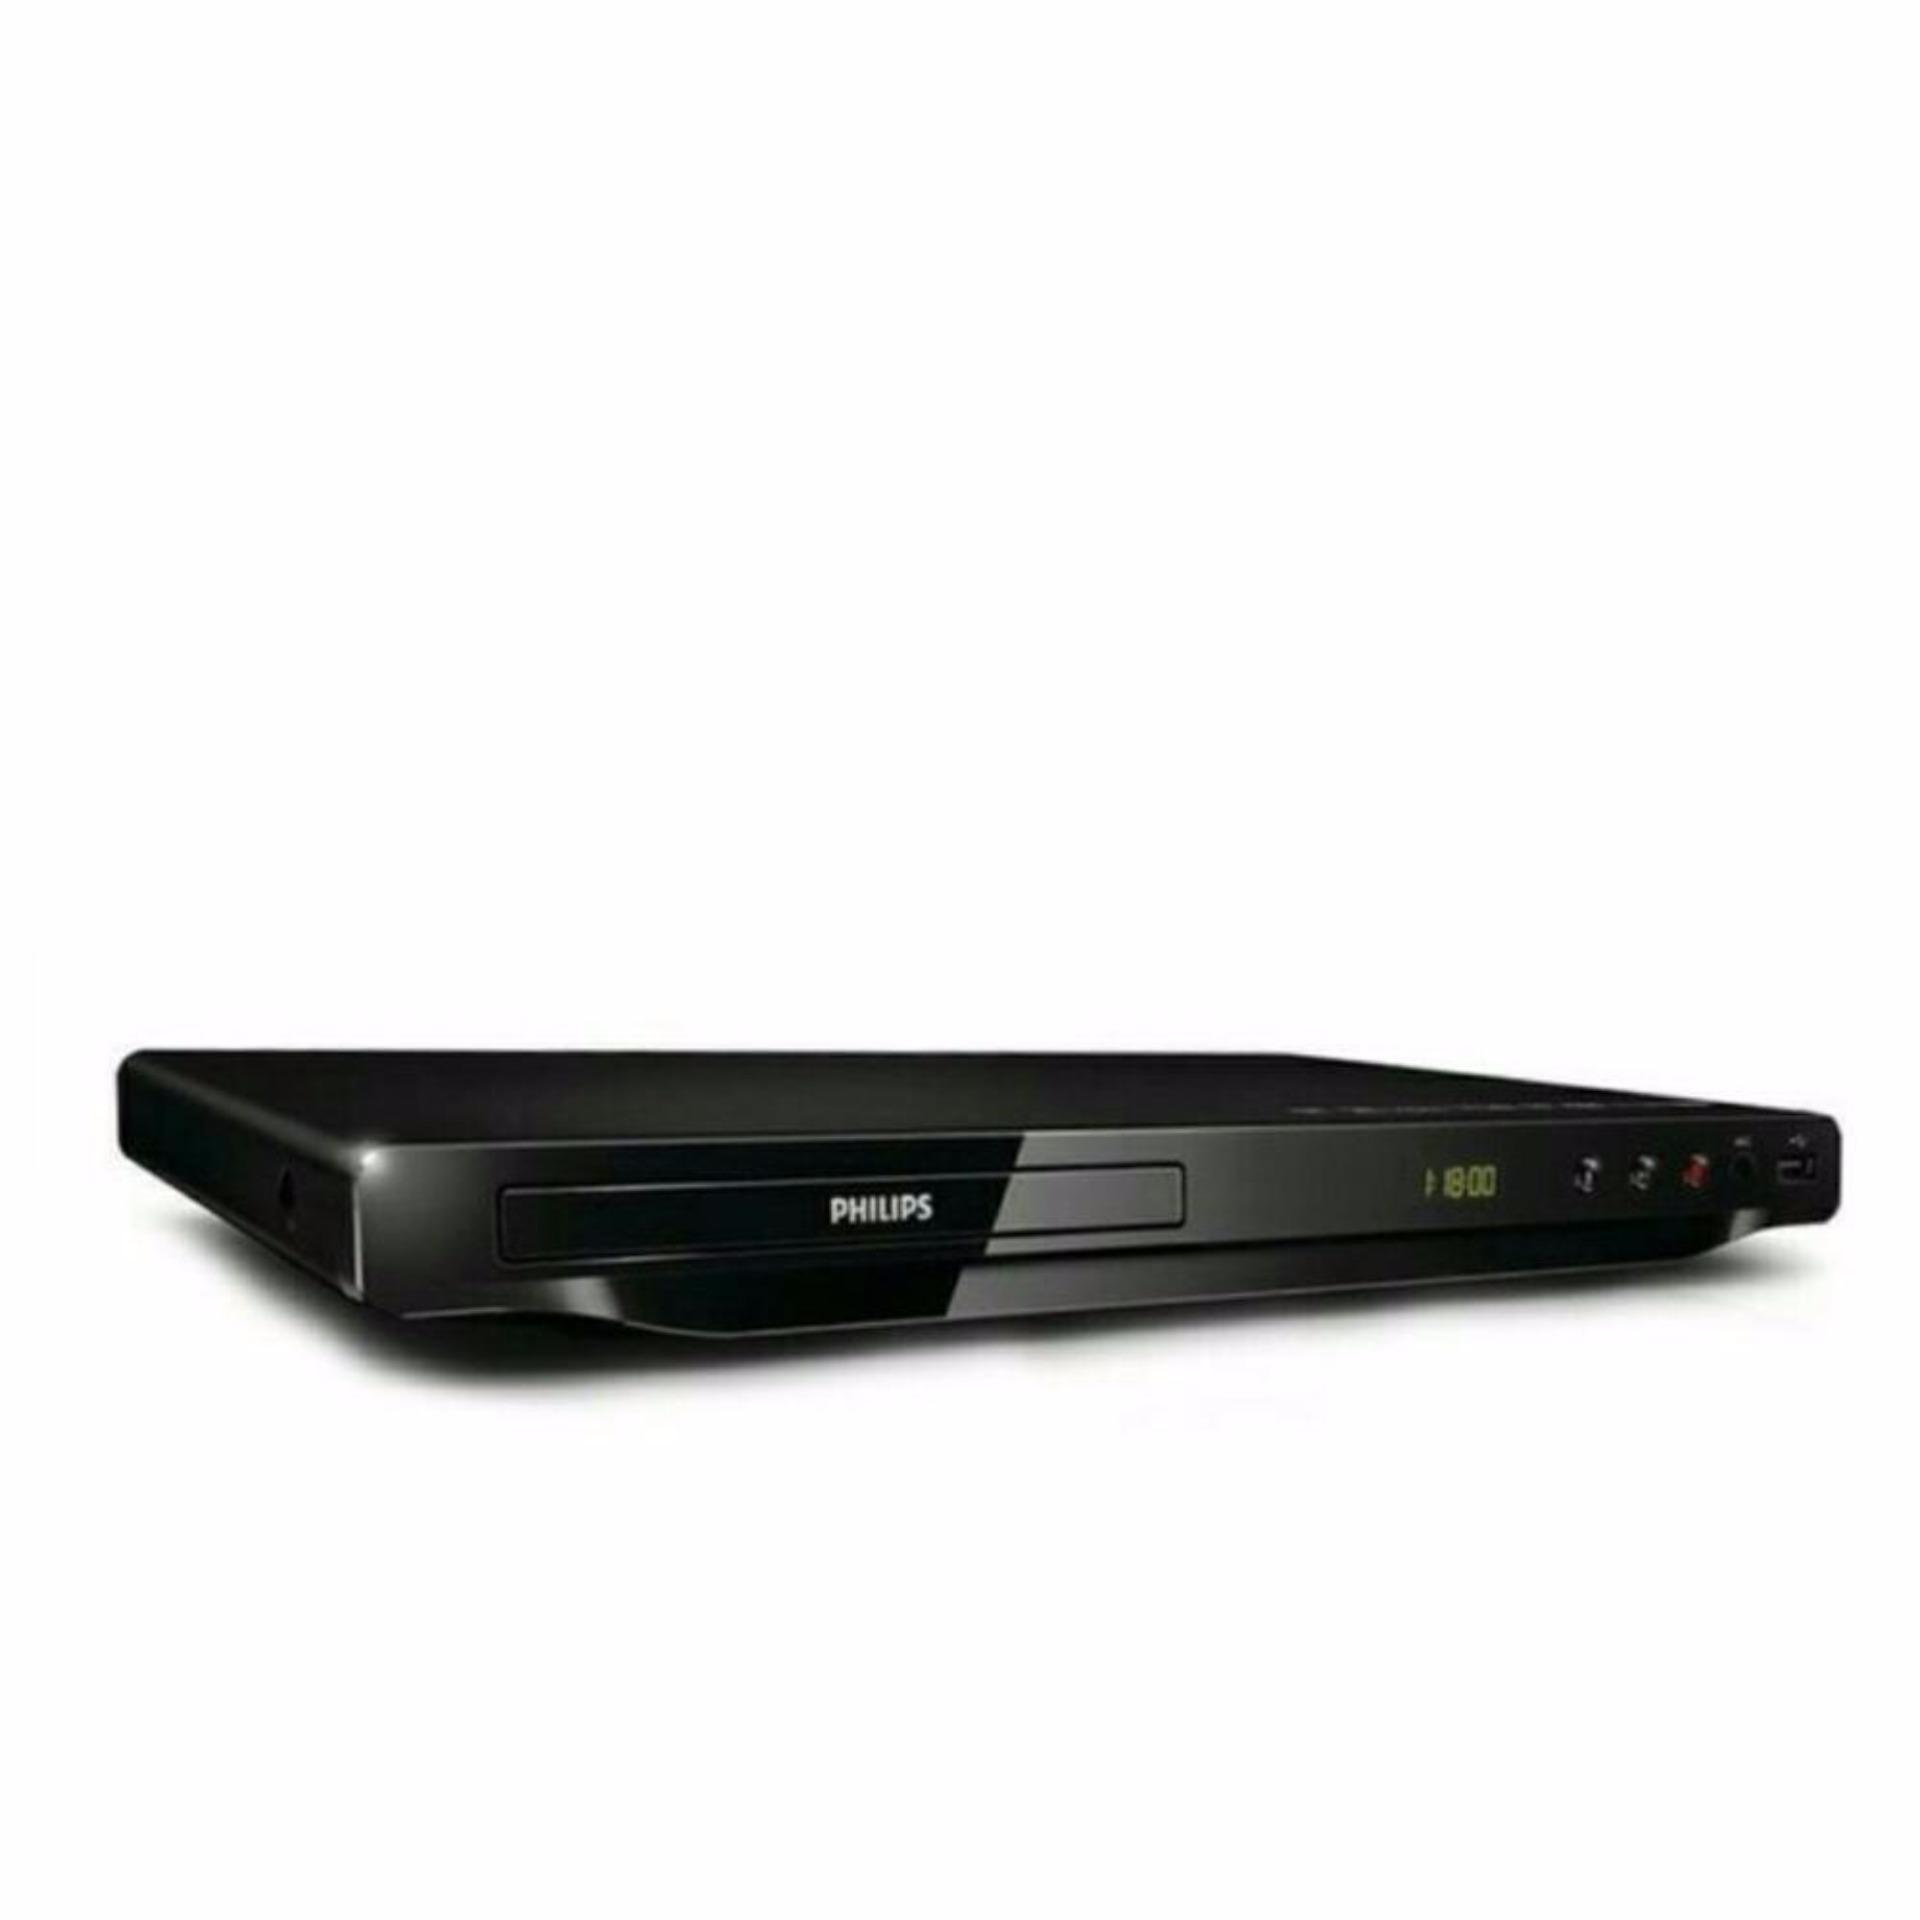 PHILIPS DVD PLAYER DVP-3690K HDMI USB PLAYER